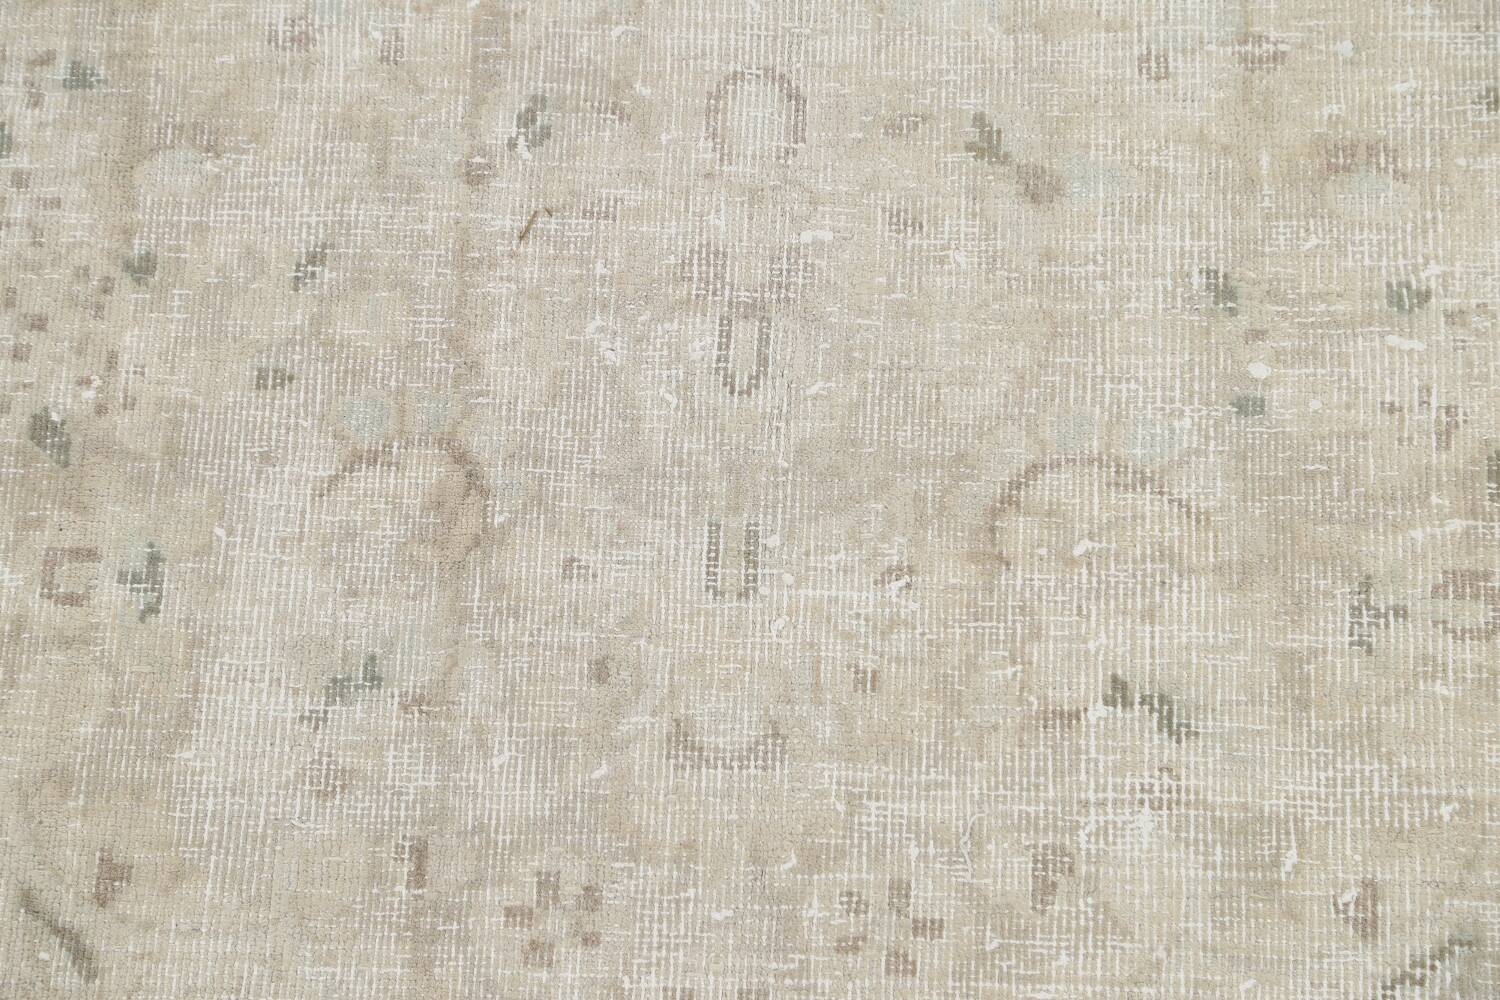 Muted Distressed Tabriz Persian Area Rug 10x12 image 10